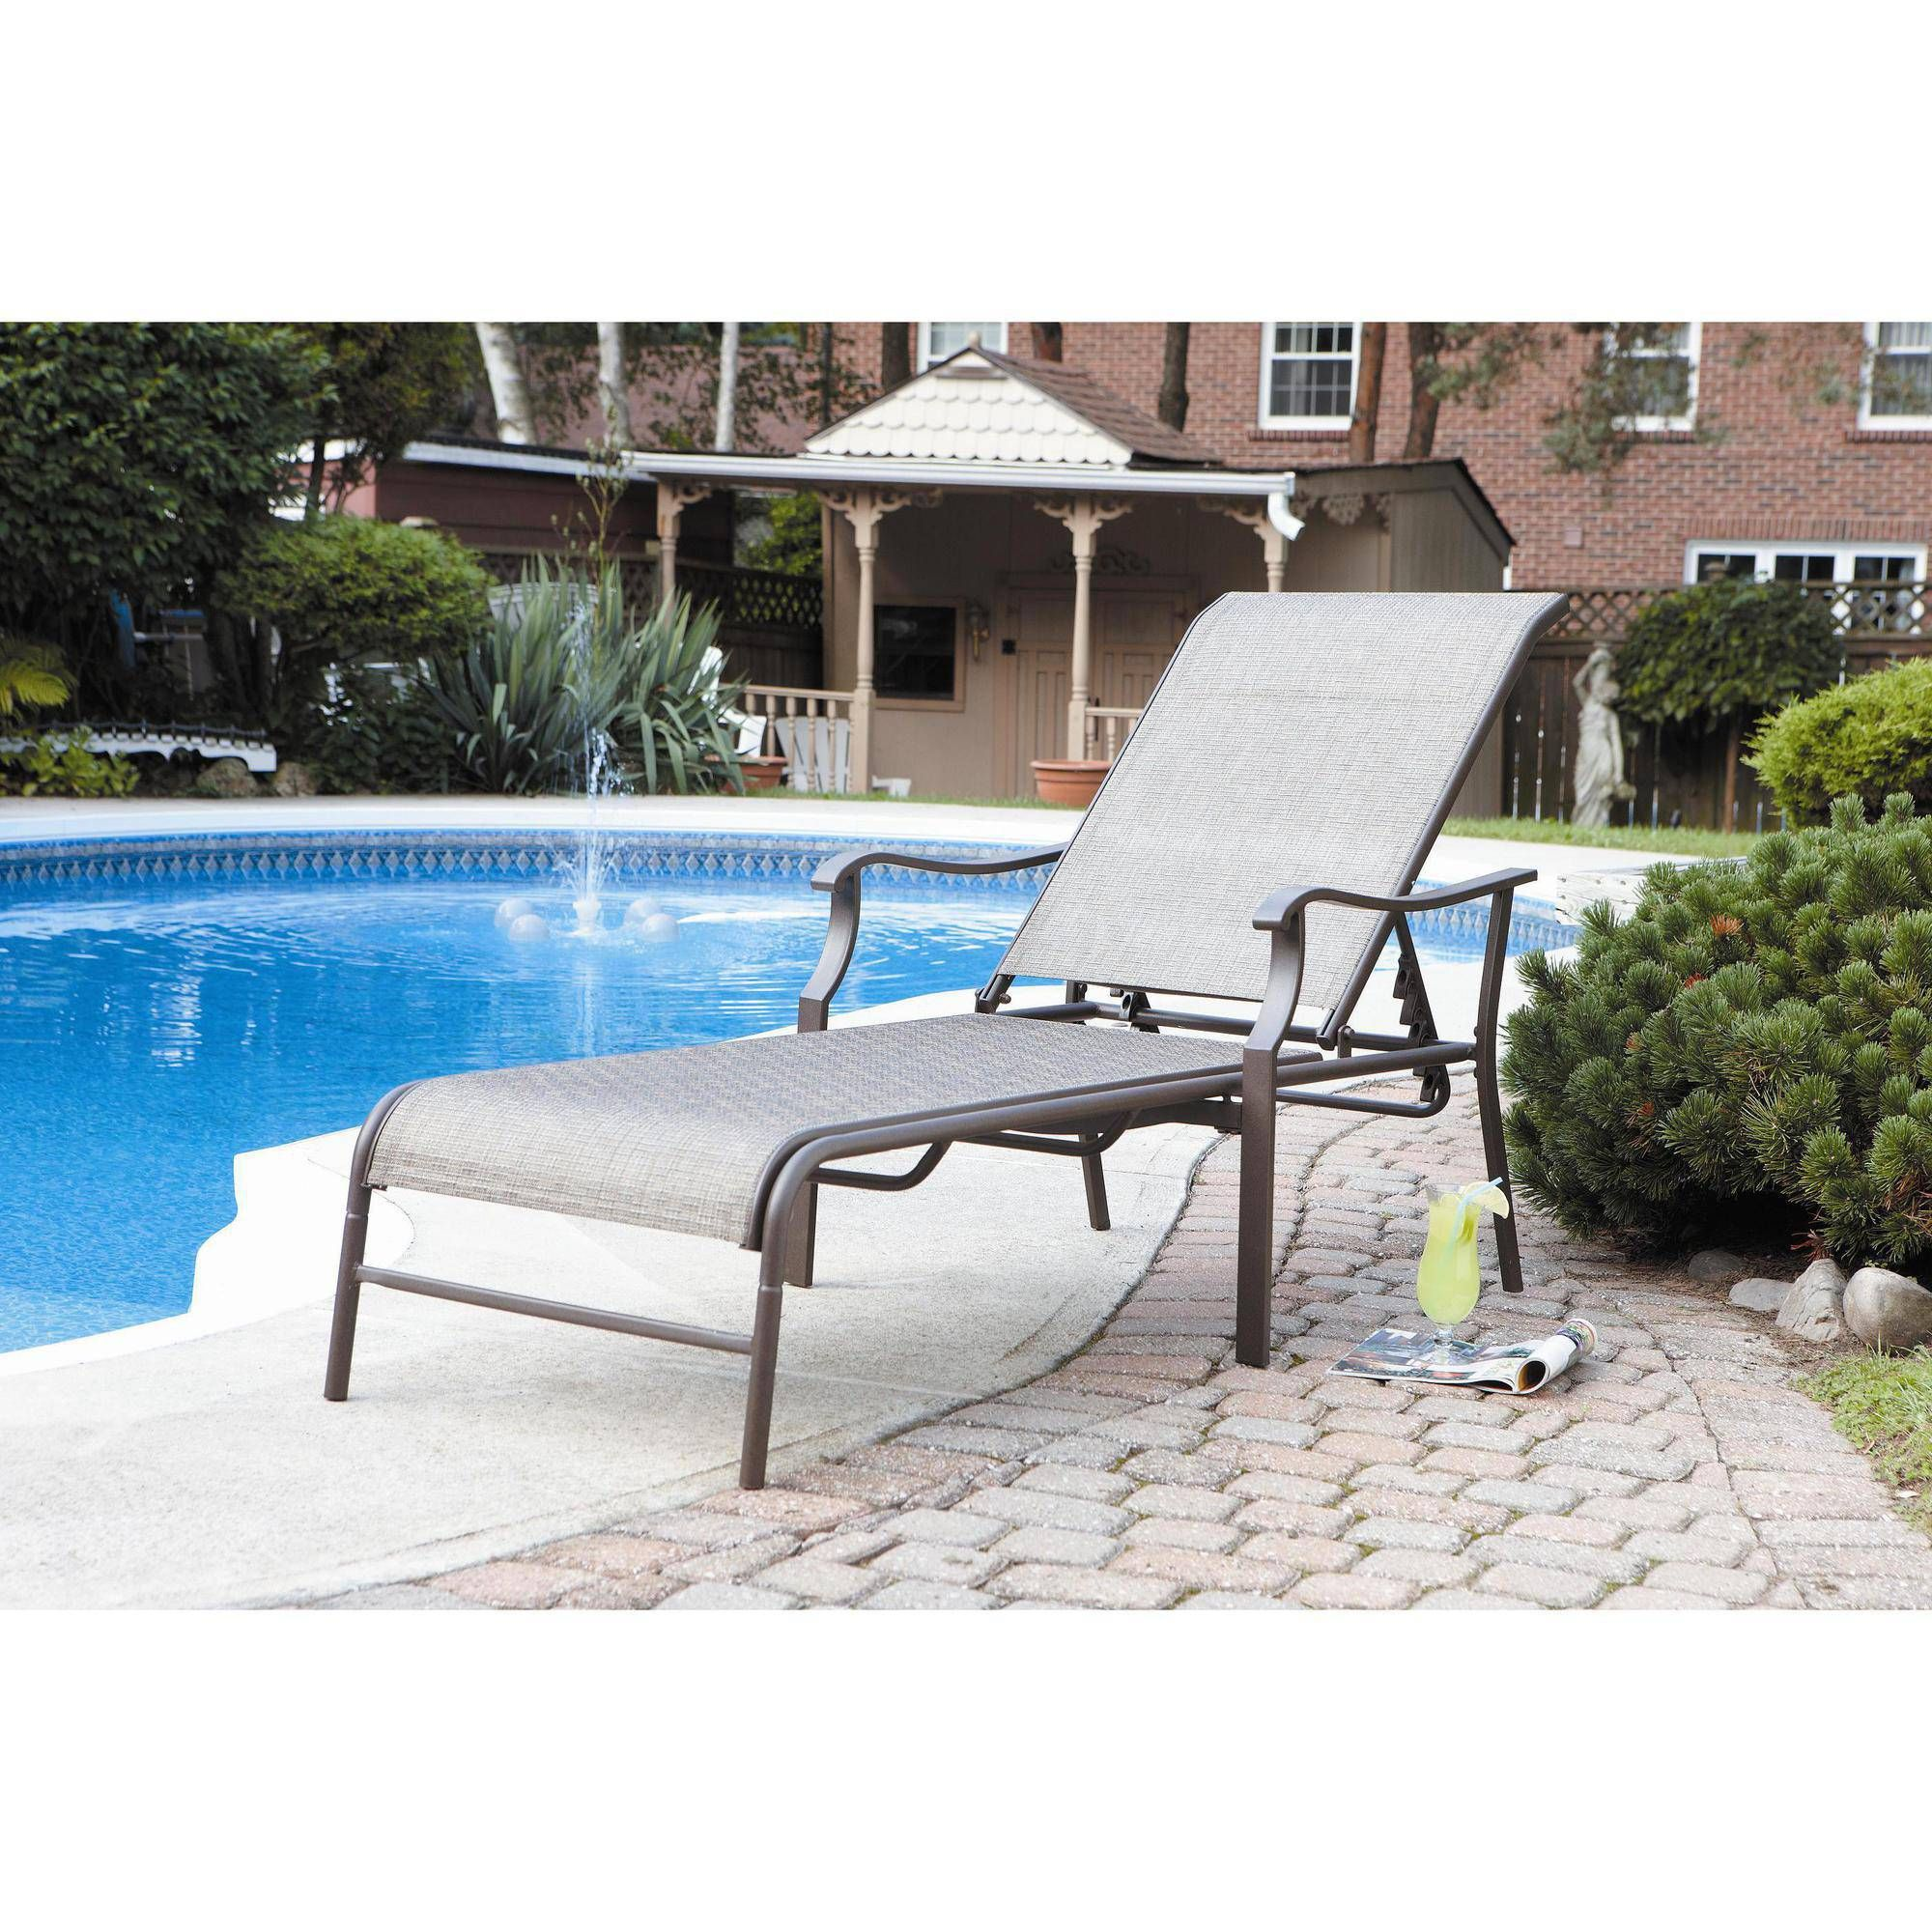 Pool Sessel Luxus Lounge Sessel Pool